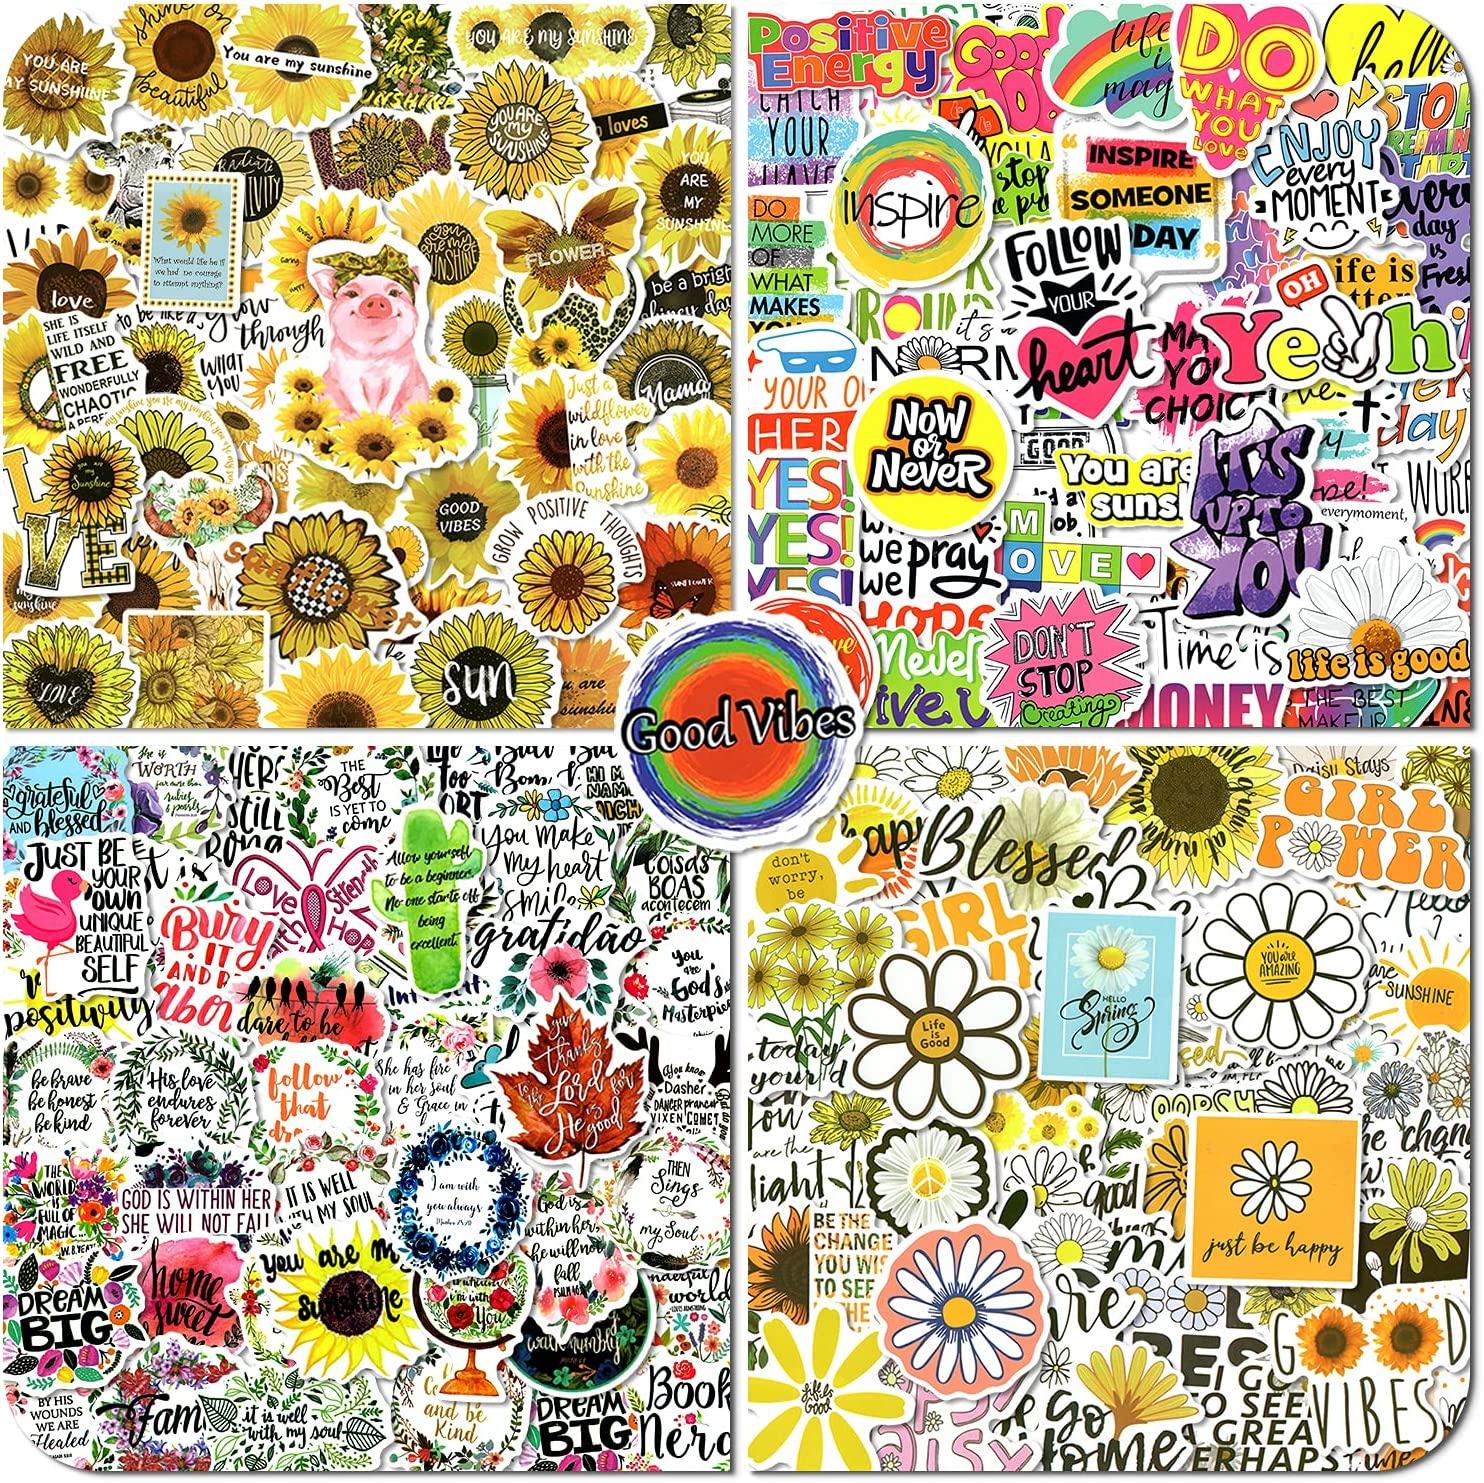 200pcs Inspirational Stickers for Laptop, Reward Motivational Stickers Decals Quote for Water Bottles, Positive Word Stickers for Scrapbook, Waterproof Vinyl Stickers for Adults, Tenns